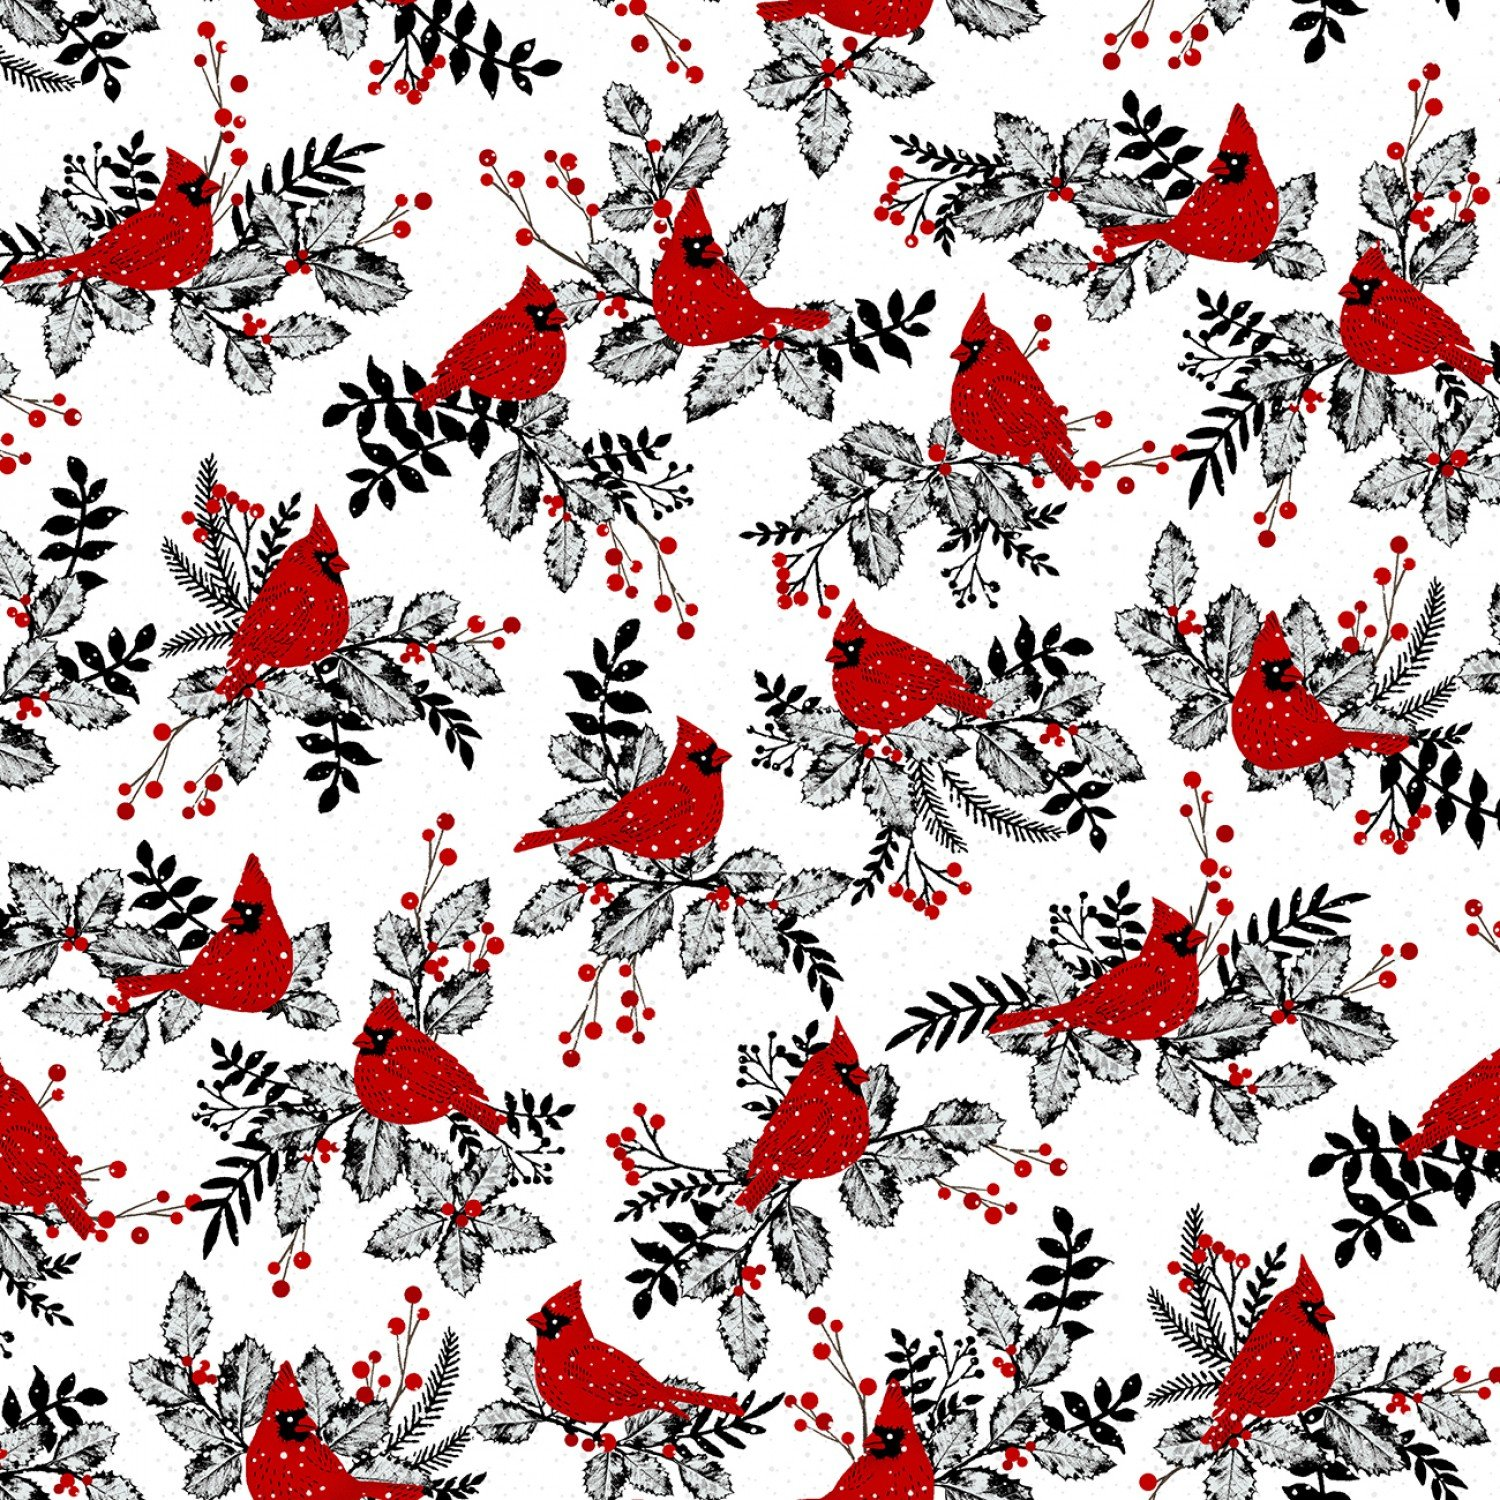 SE-Midwinter Song 5136-8 Red - Cardinals